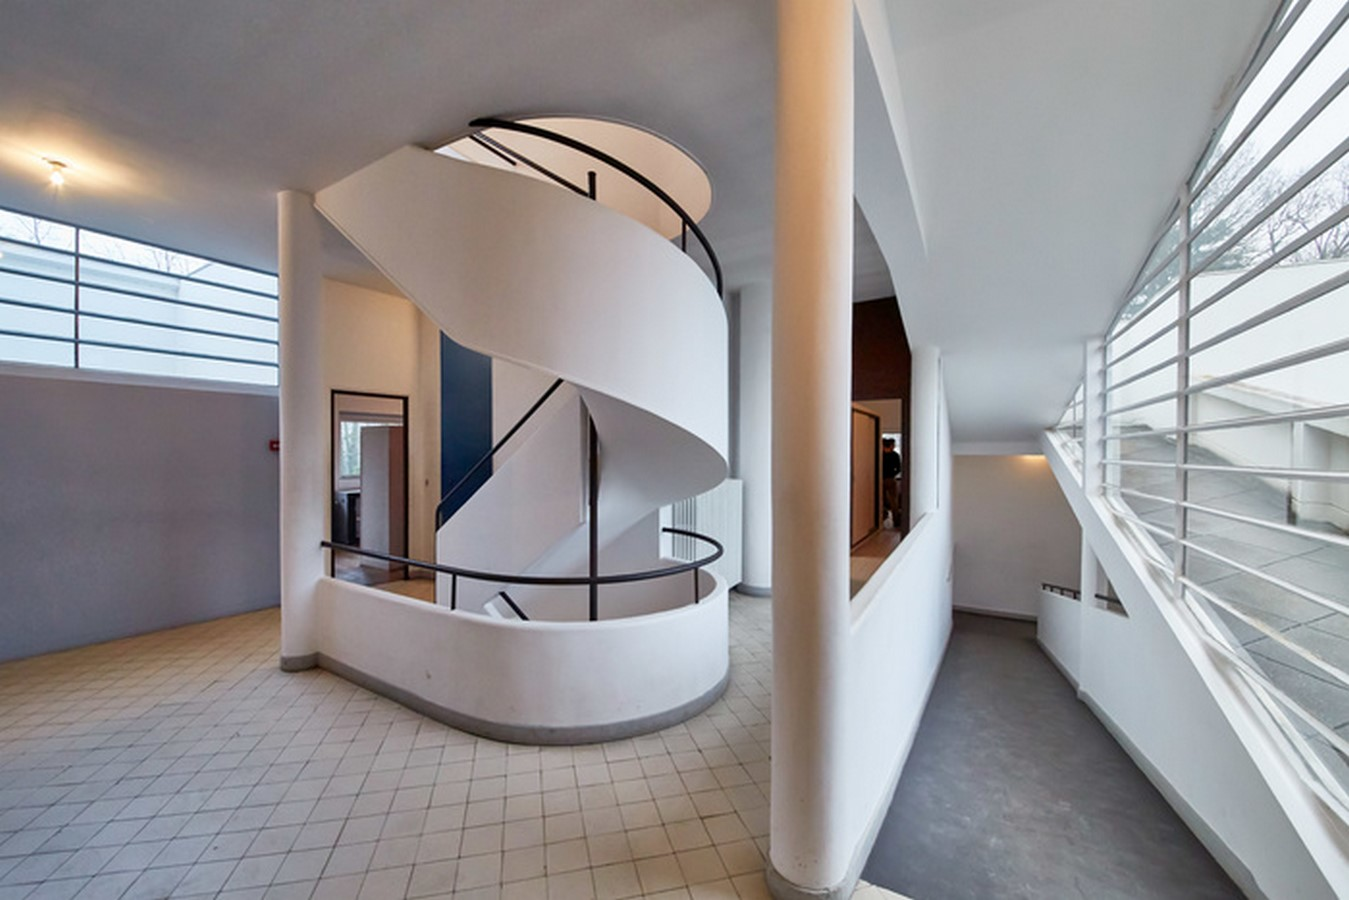 10 Things you did not know about Villa Savoye - Sheet3